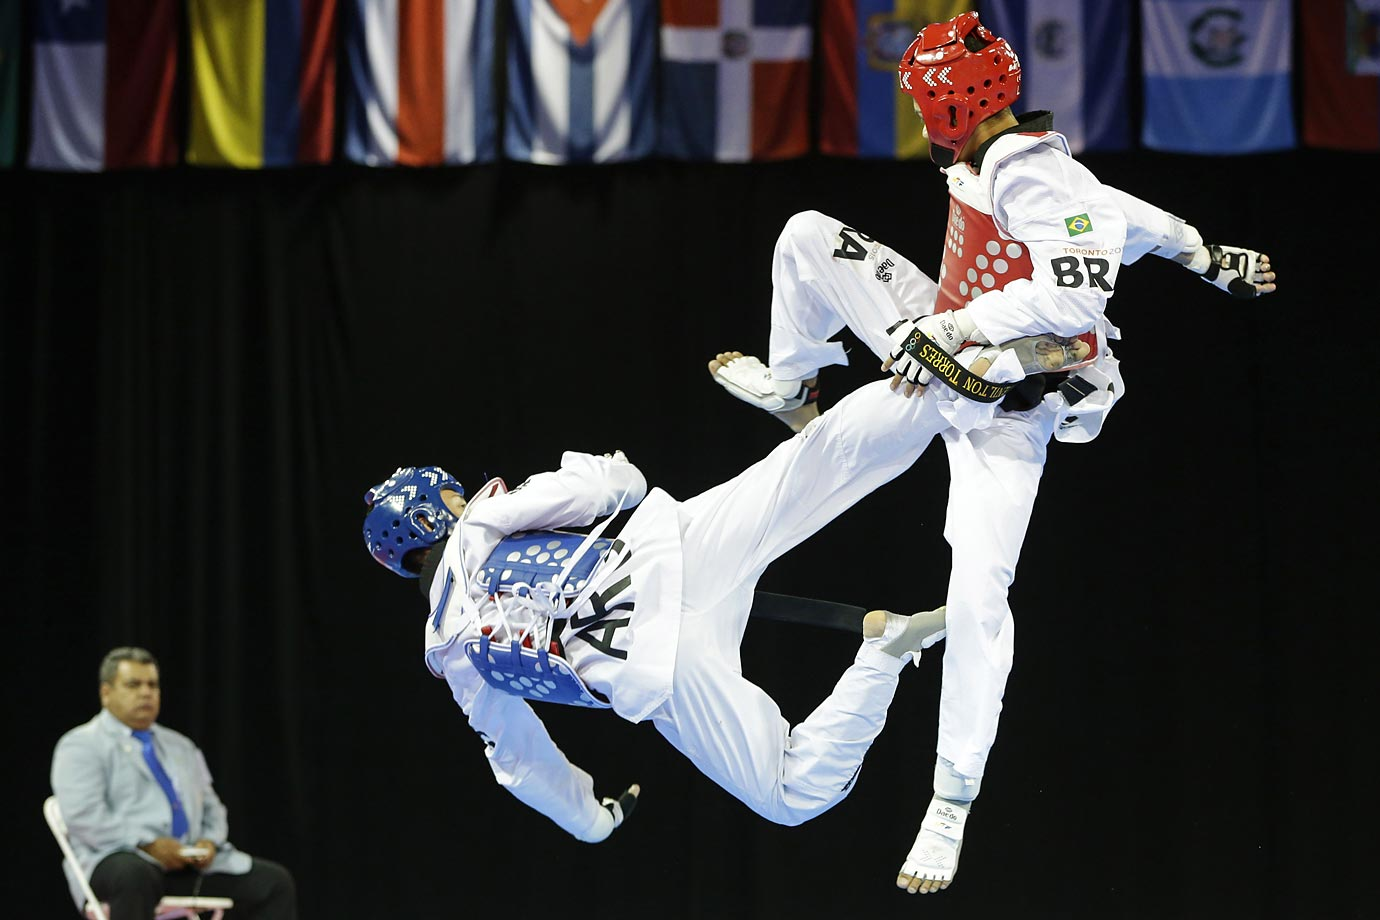 Argentina's Lucas Guzma fights Brazil's Venilton Torres during a 58kg bronze medal taekwondo match at the Pan Am Games. Guzman won.